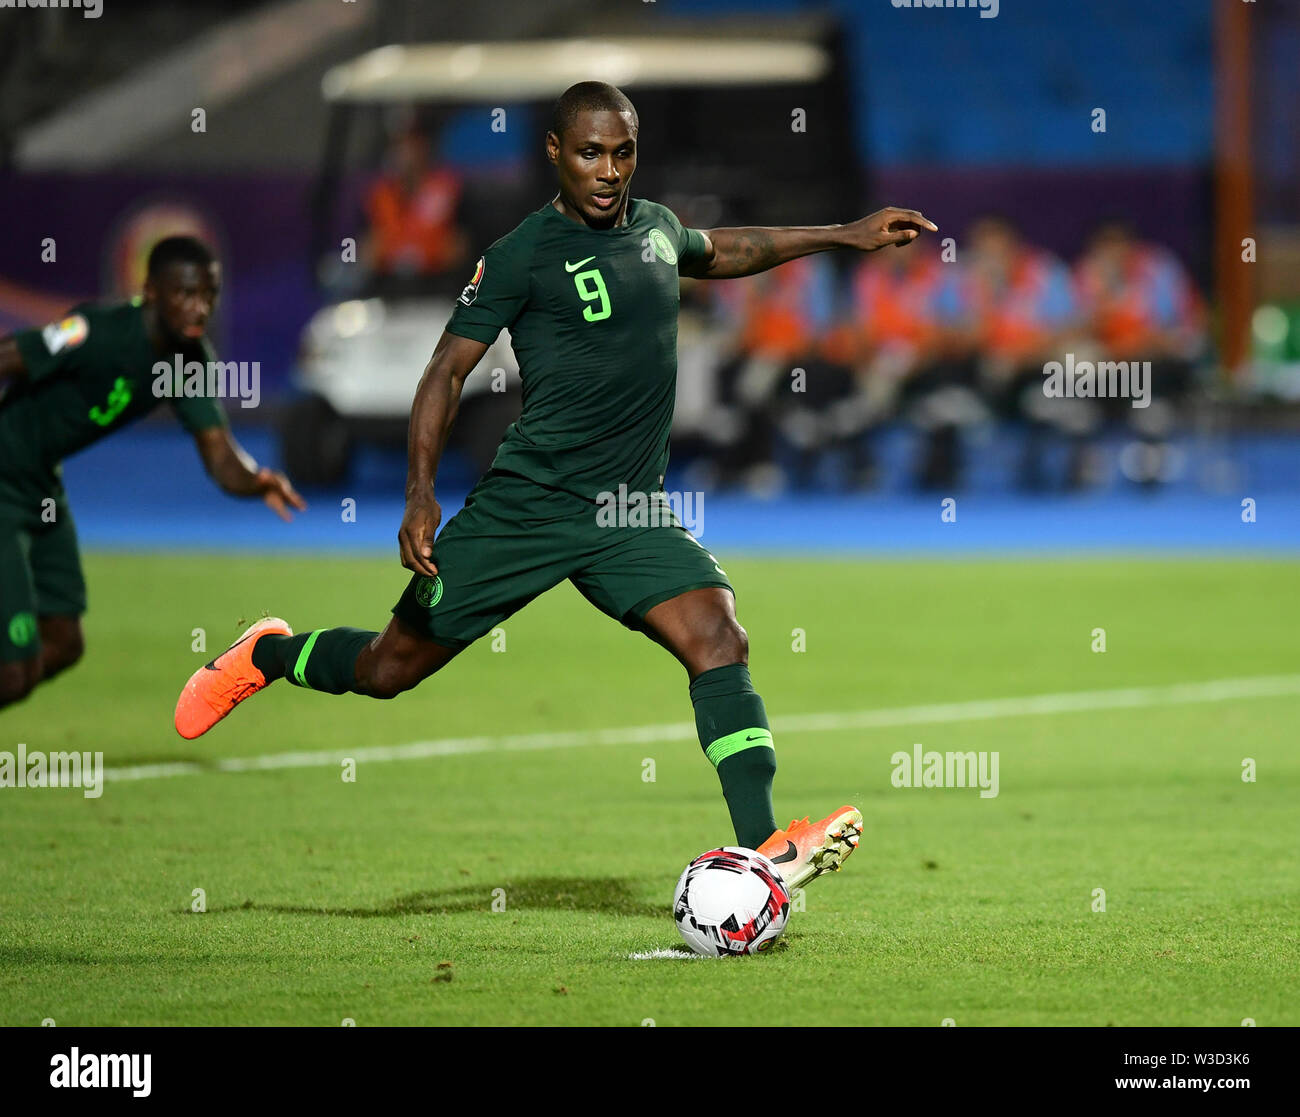 Cairo. 14th July, 2019. Odion Ighalo of Nigeria scores in a penalty shooting during the semifinal match between Algeria and Nigeria at the 2019 Africa Cup of Nations in Cairo, Egypt on July 14, 2019. Credit: Wu Huiwo/Xinhua/Alamy Live News - Stock Image